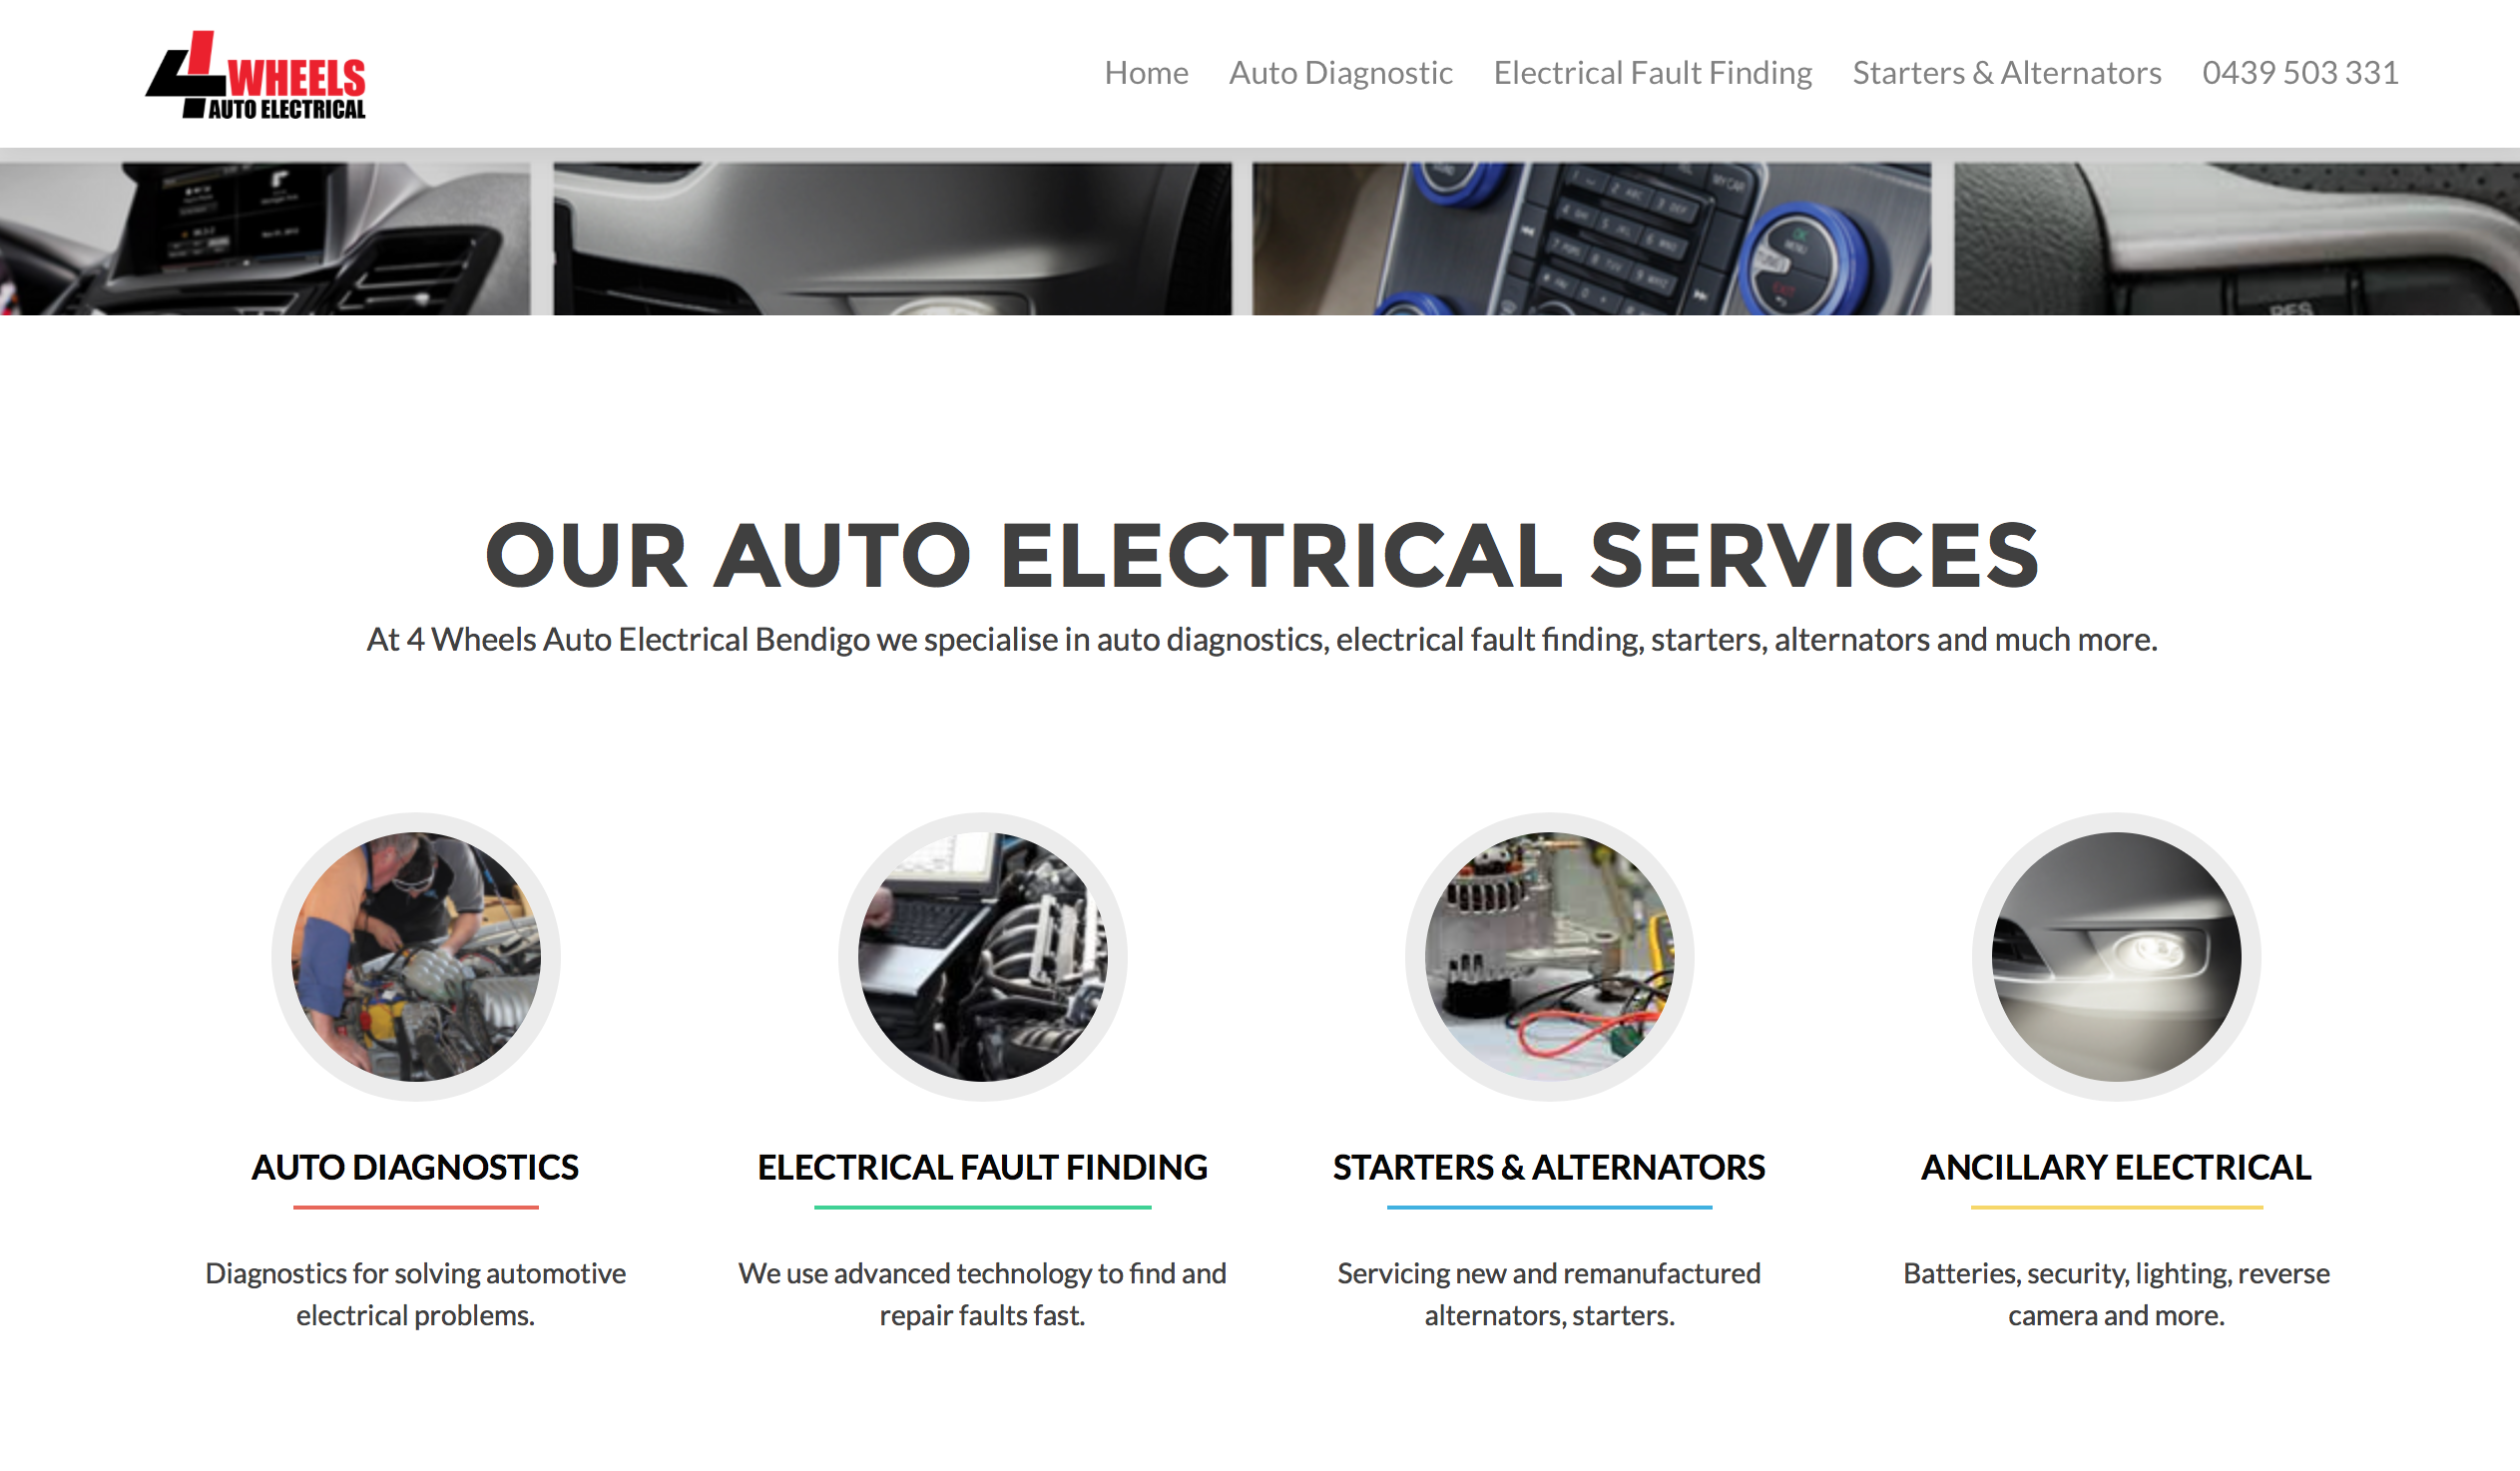 4-wheels-auto-electrical-get-online-recent-projects-homepage